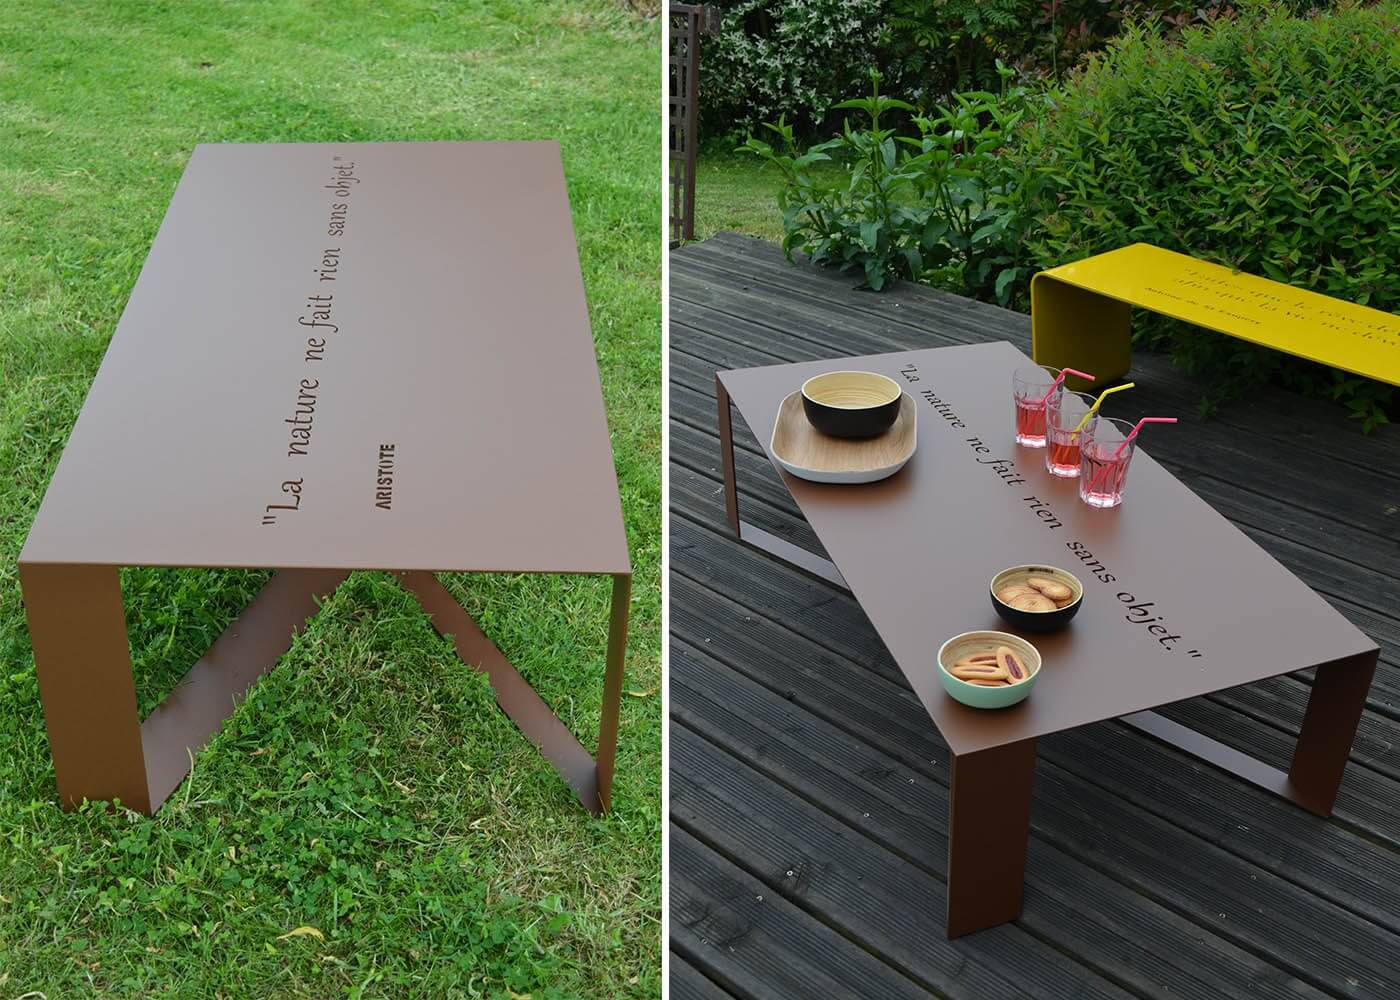 Table de salon de jardin en m tal 14 couleurs en vente chez ksl living - Table d activite exterieur ...